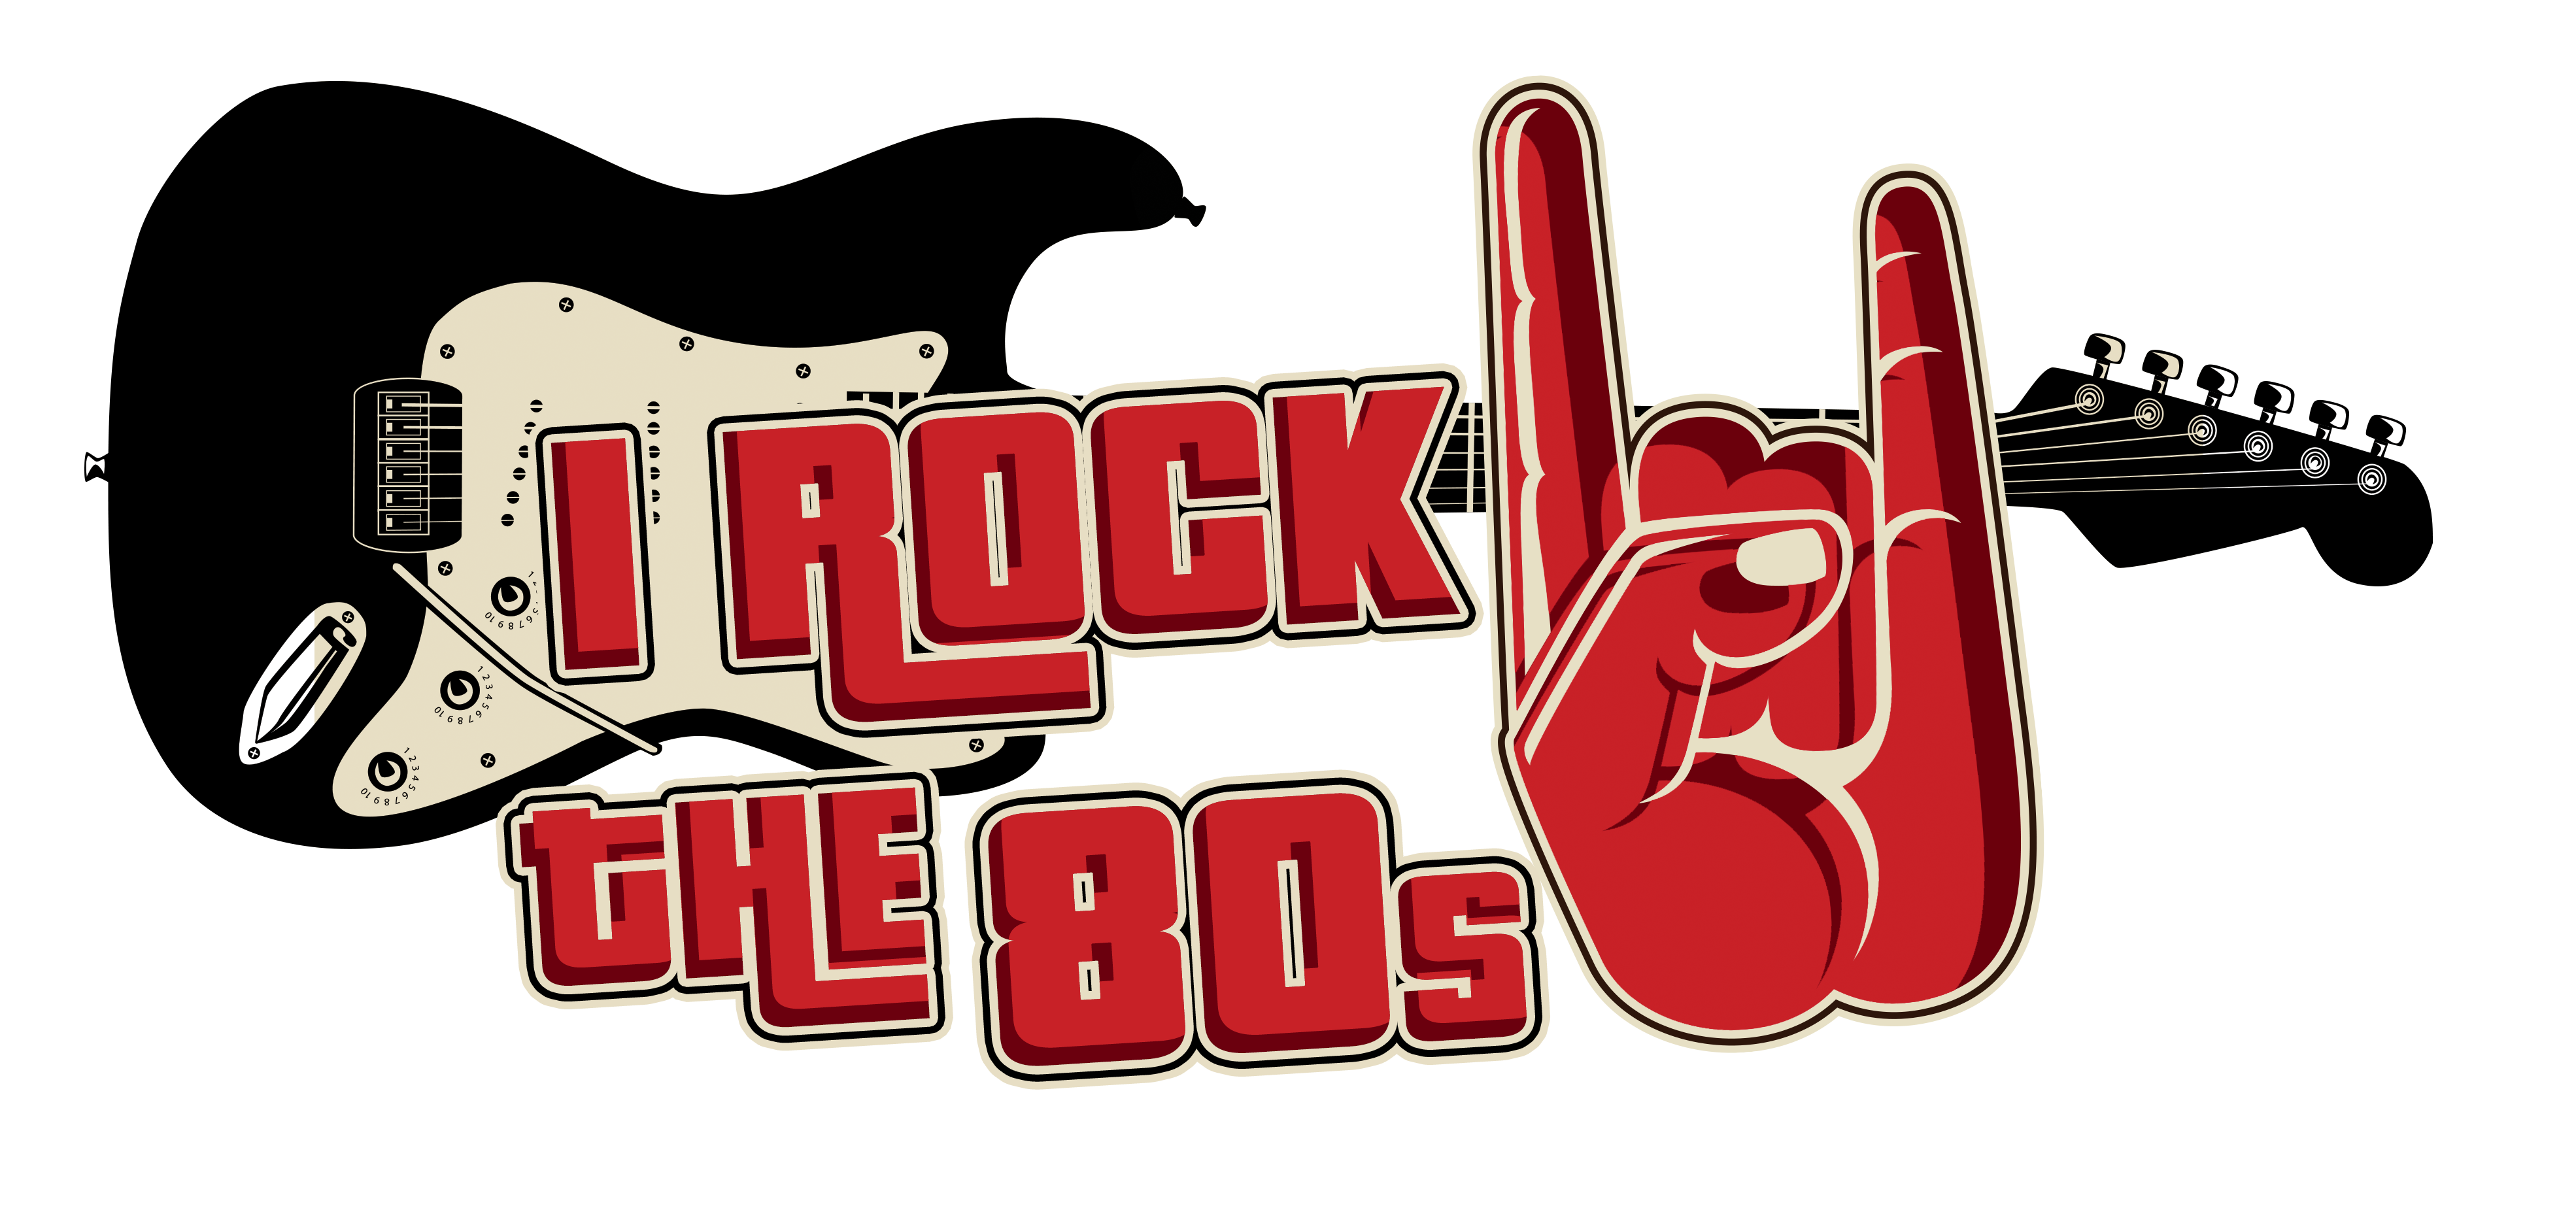 Loverboy band logo png. I rock the s